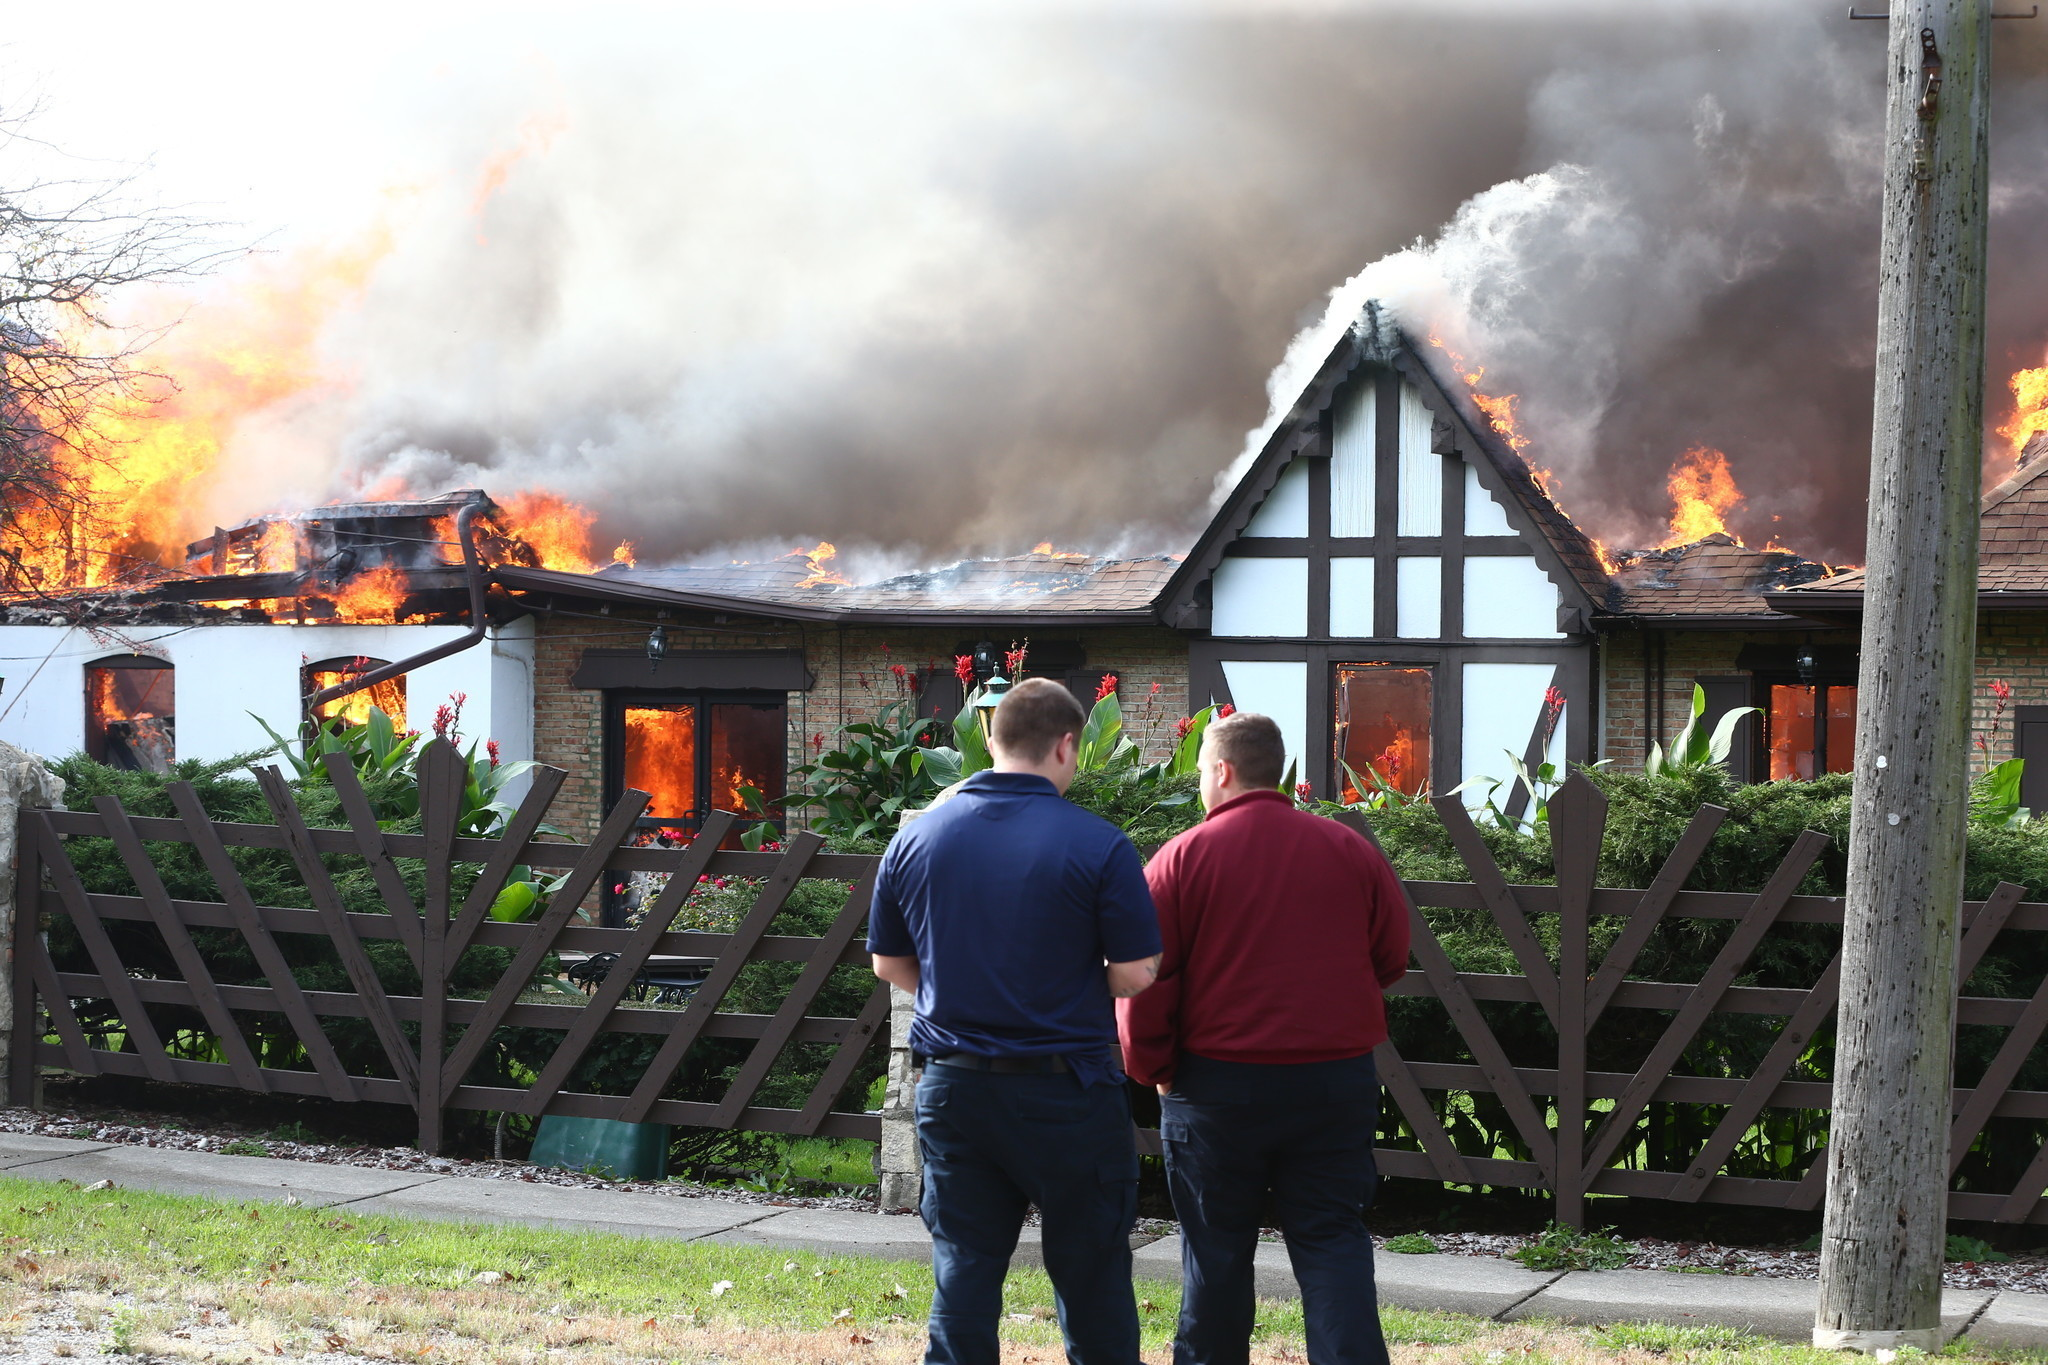 Fire destroys Willowbrook Ballroom - The Doings Western ...